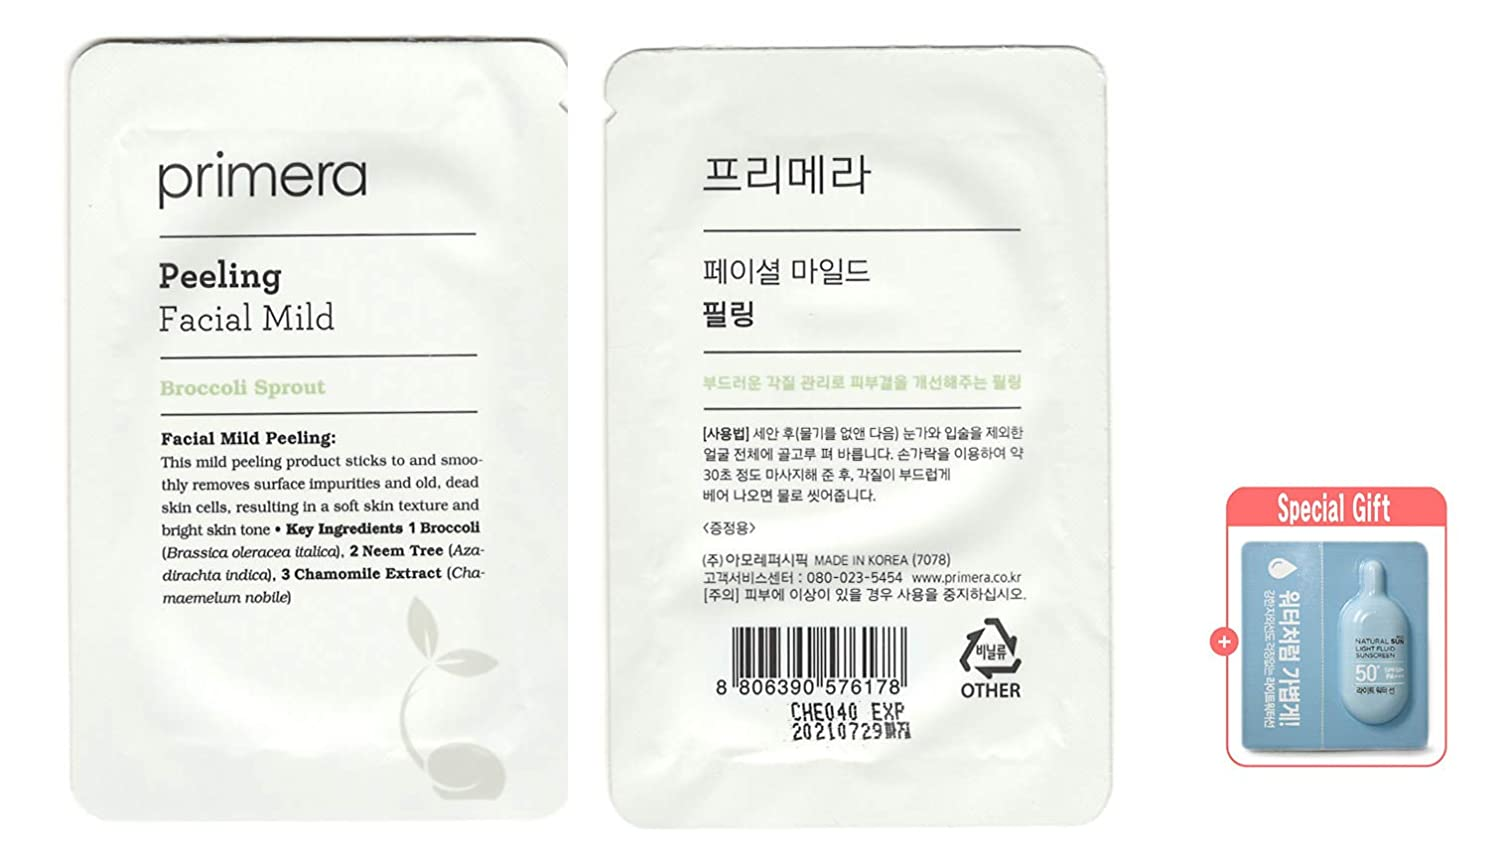 [Primera] 30pcs X Primera Facial Mild Peeling with Special Gift, Super Saver than Full Size, Suitable for Travel